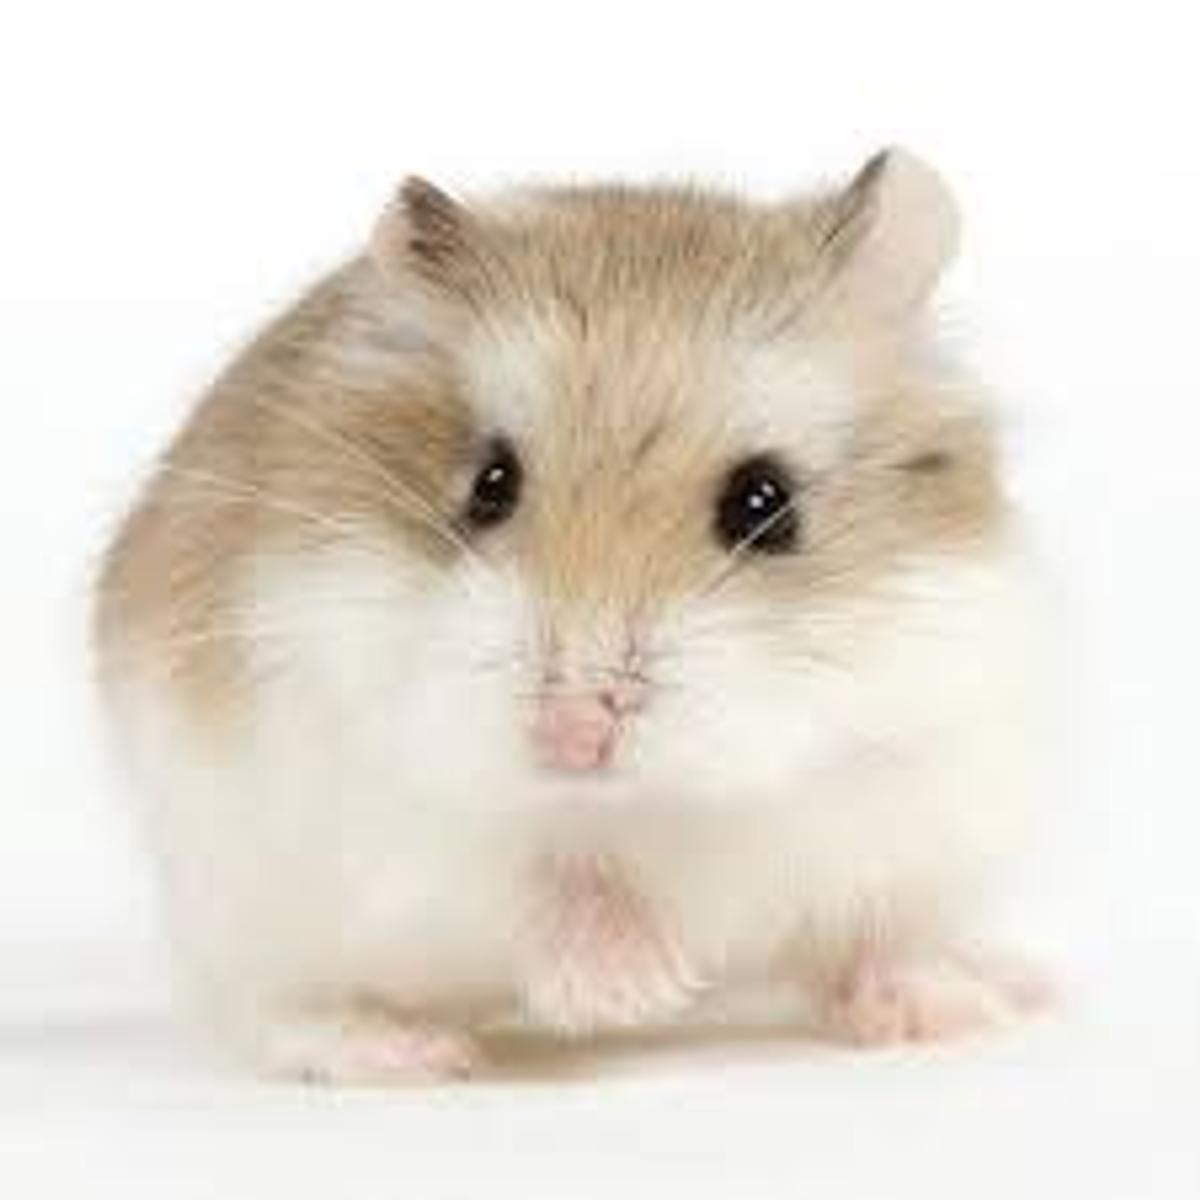 two male baby hamsters in St Helens für gratis kaufen - Shpock